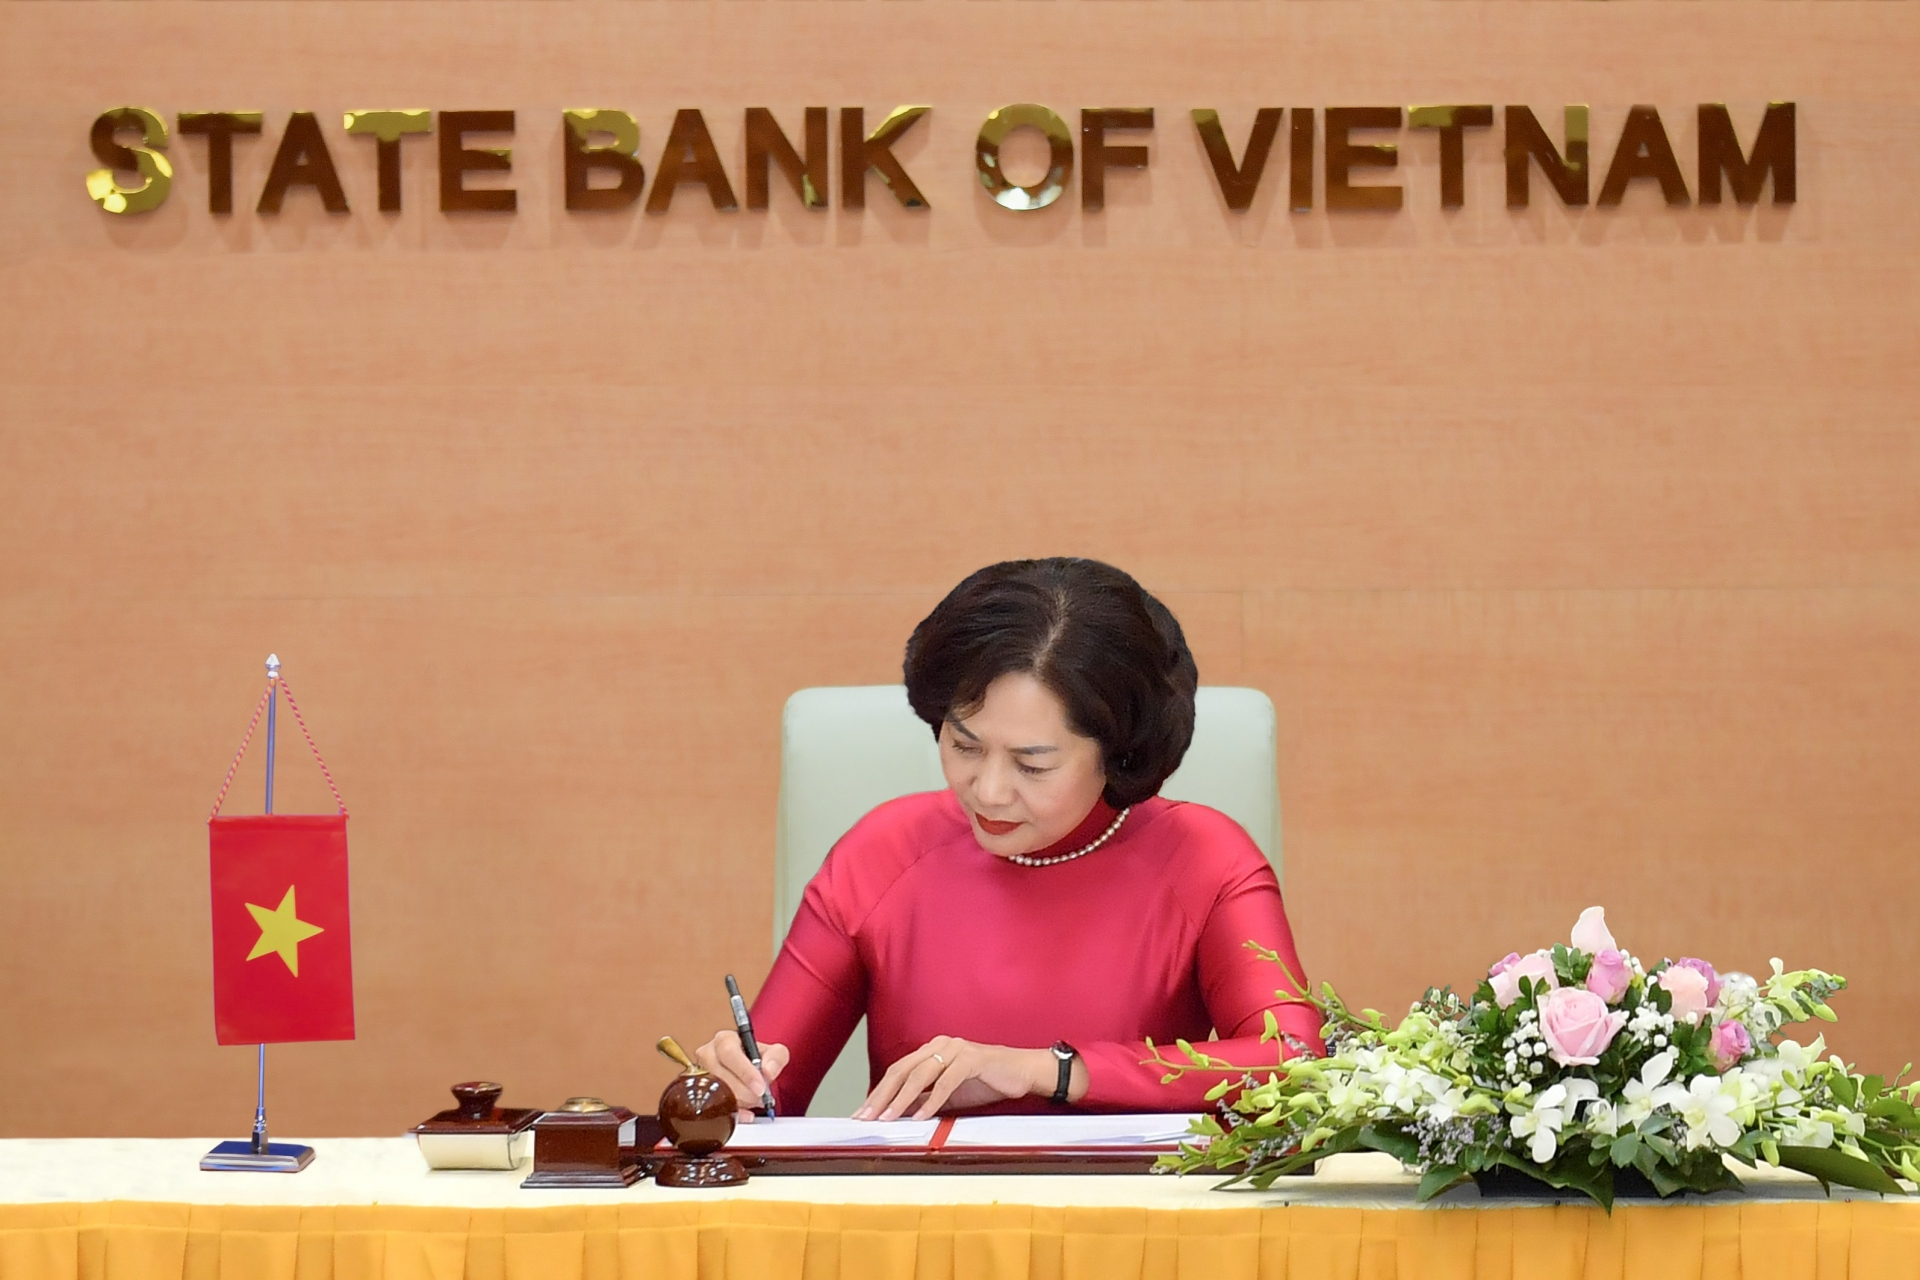 Switzerland supports Vietnam in building capacity for bank executives